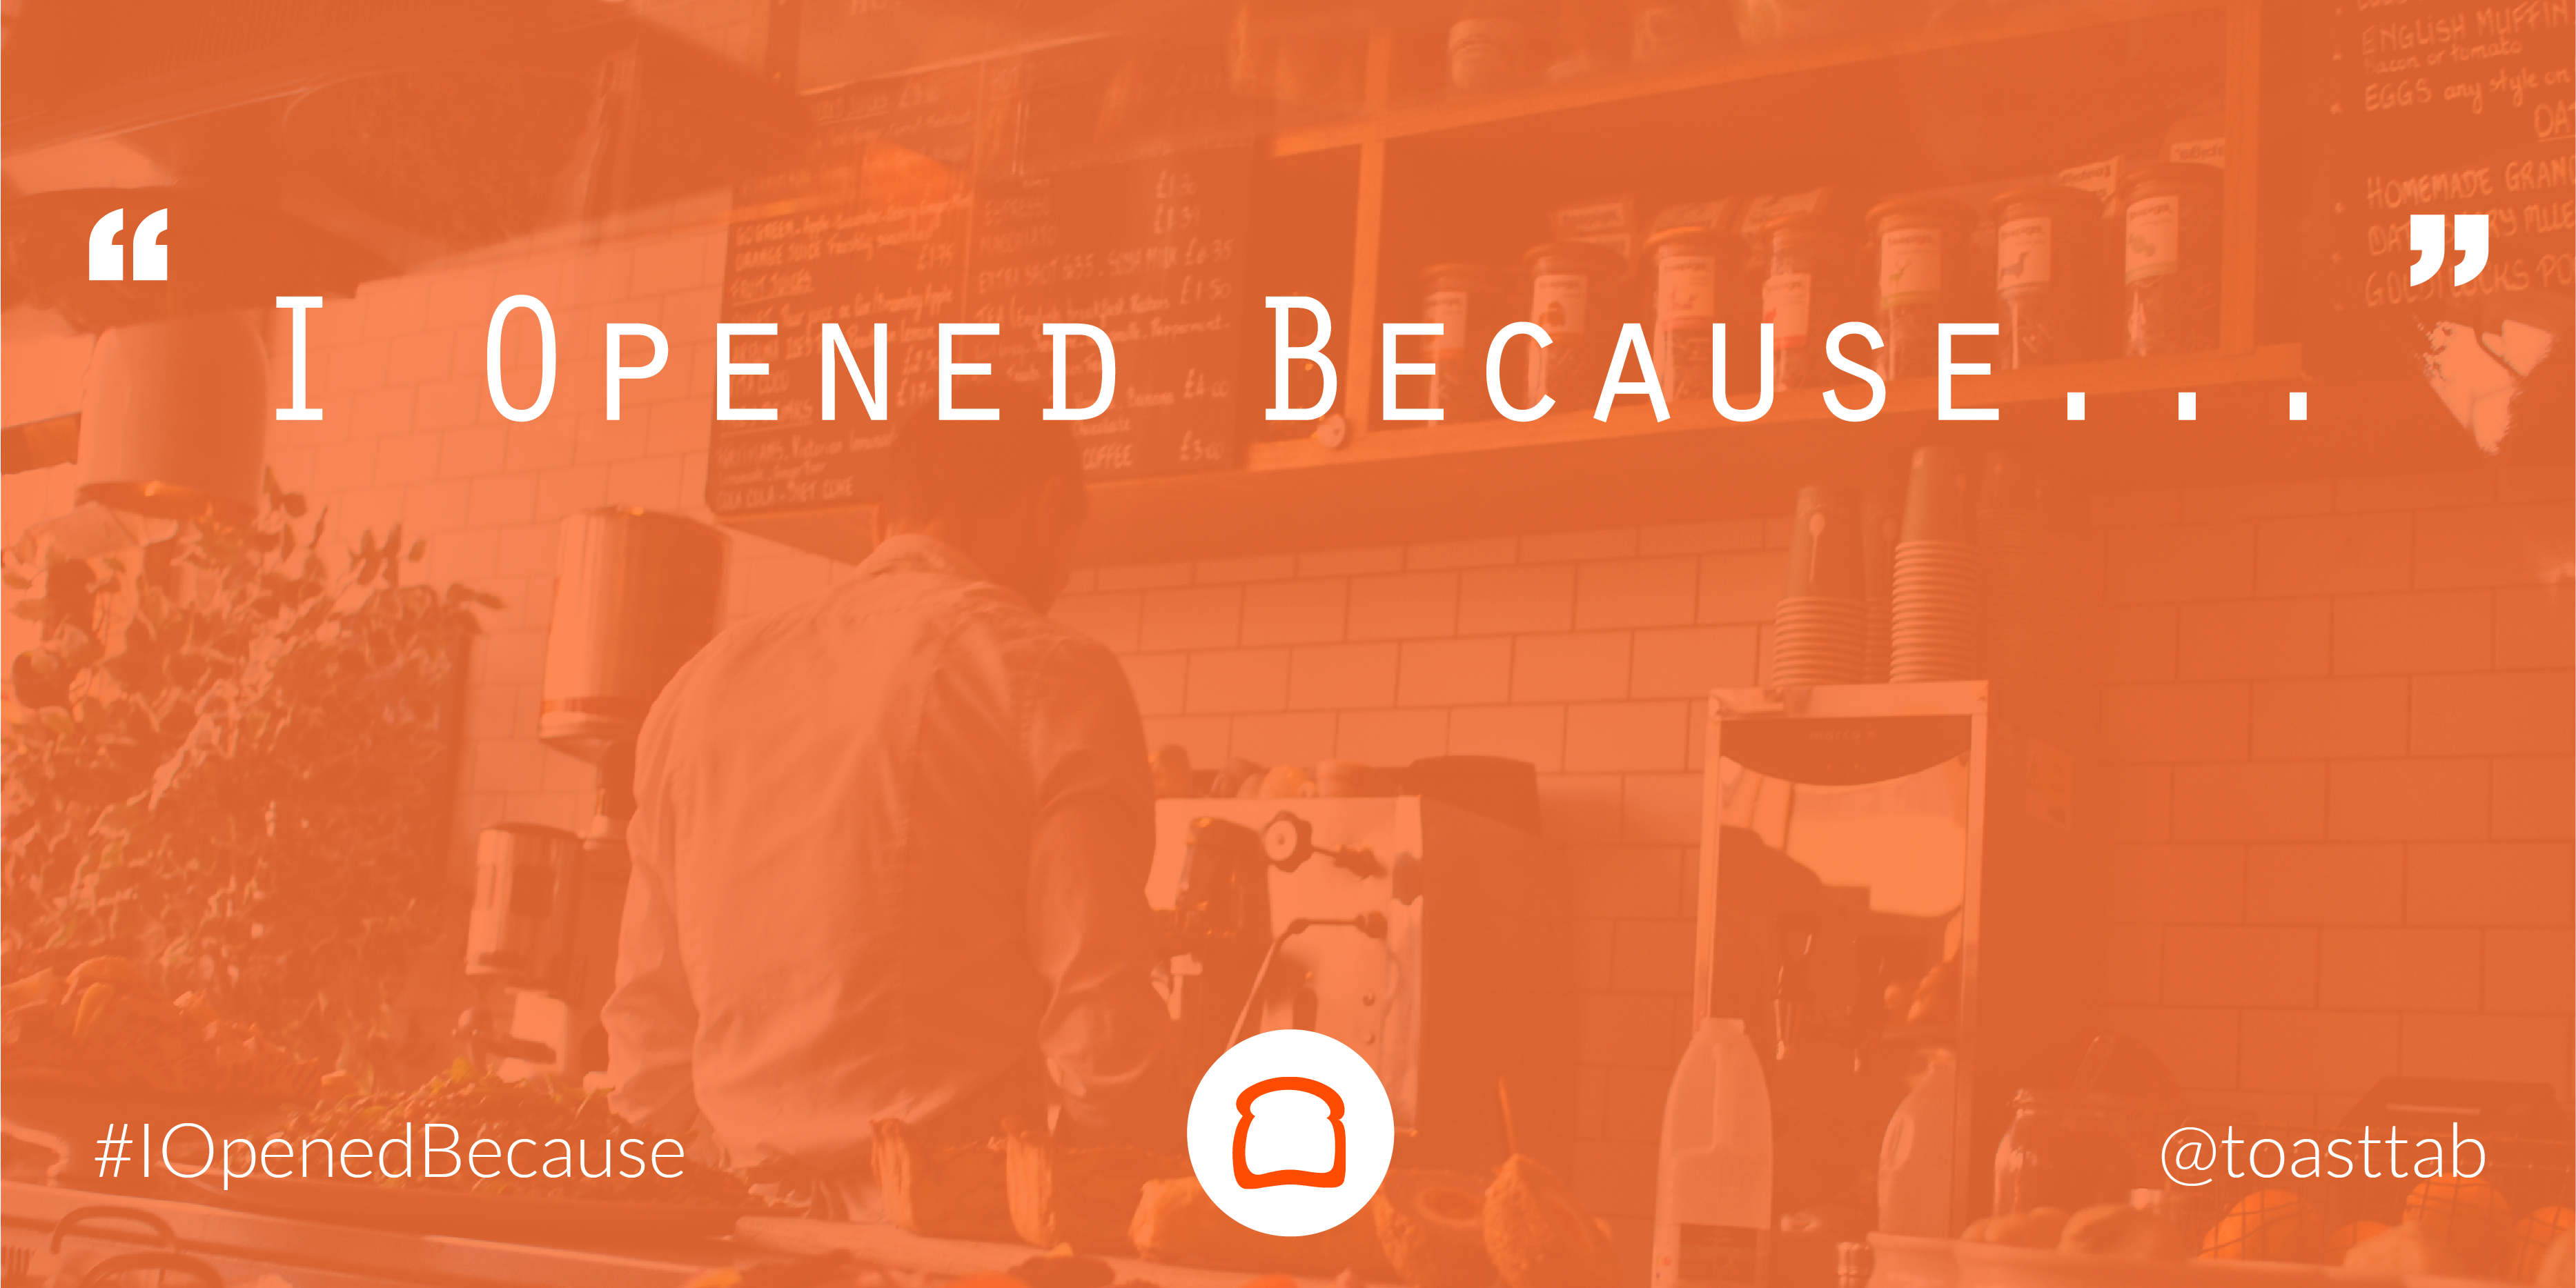 I Opened Because 10 Quotes About Starting A Restaurant